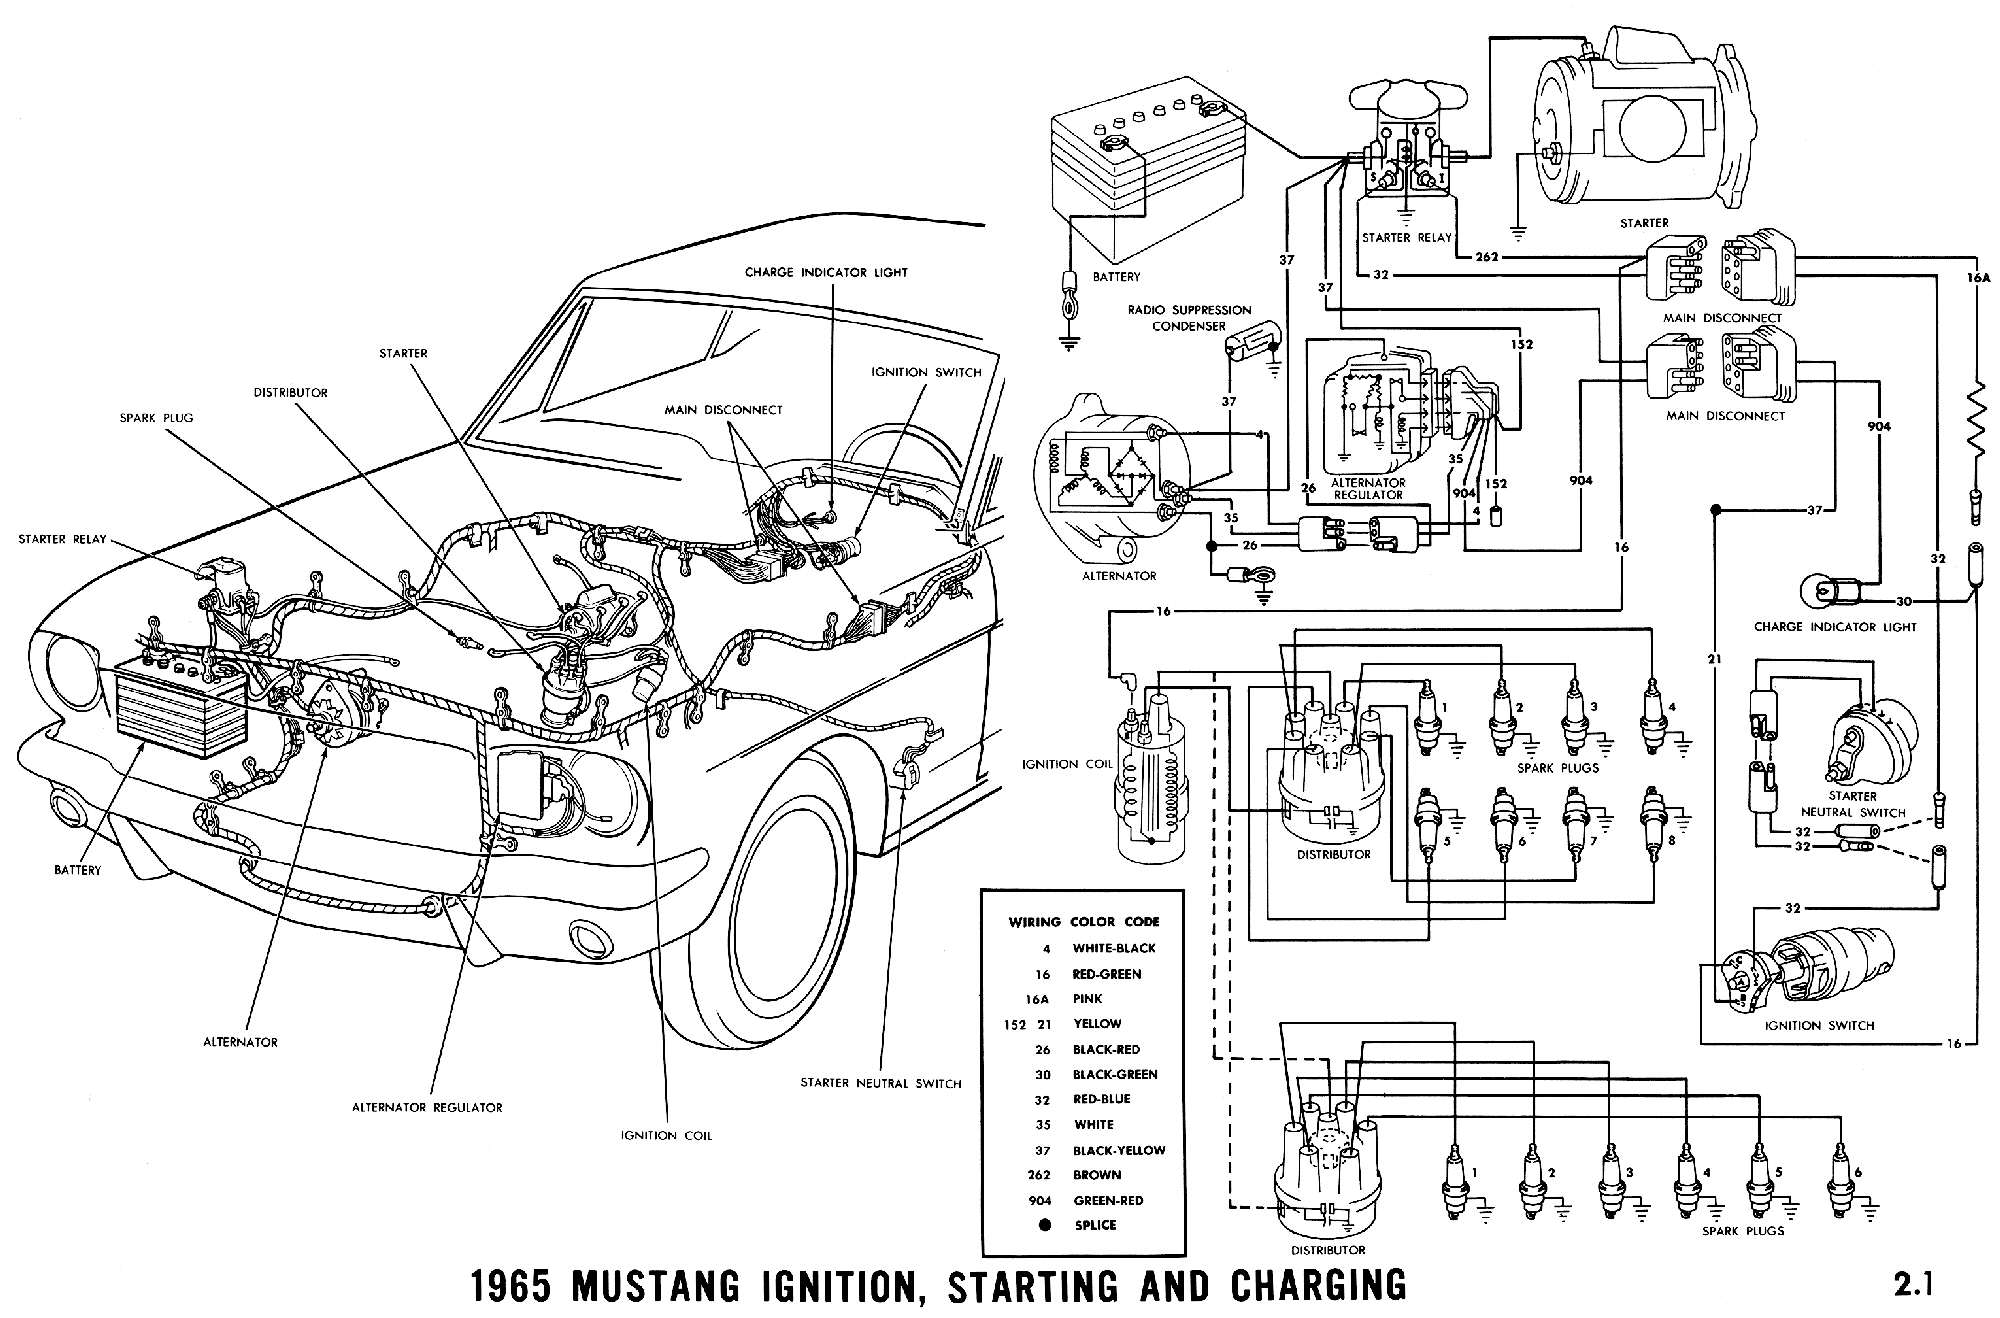 1968 V8 Engine Diagram Wiring Library Veyron W16 Intake 1965 Mustang Diagrams Average Joe Restoration Rh Averagejoerestoration Com For 89 Ford 302